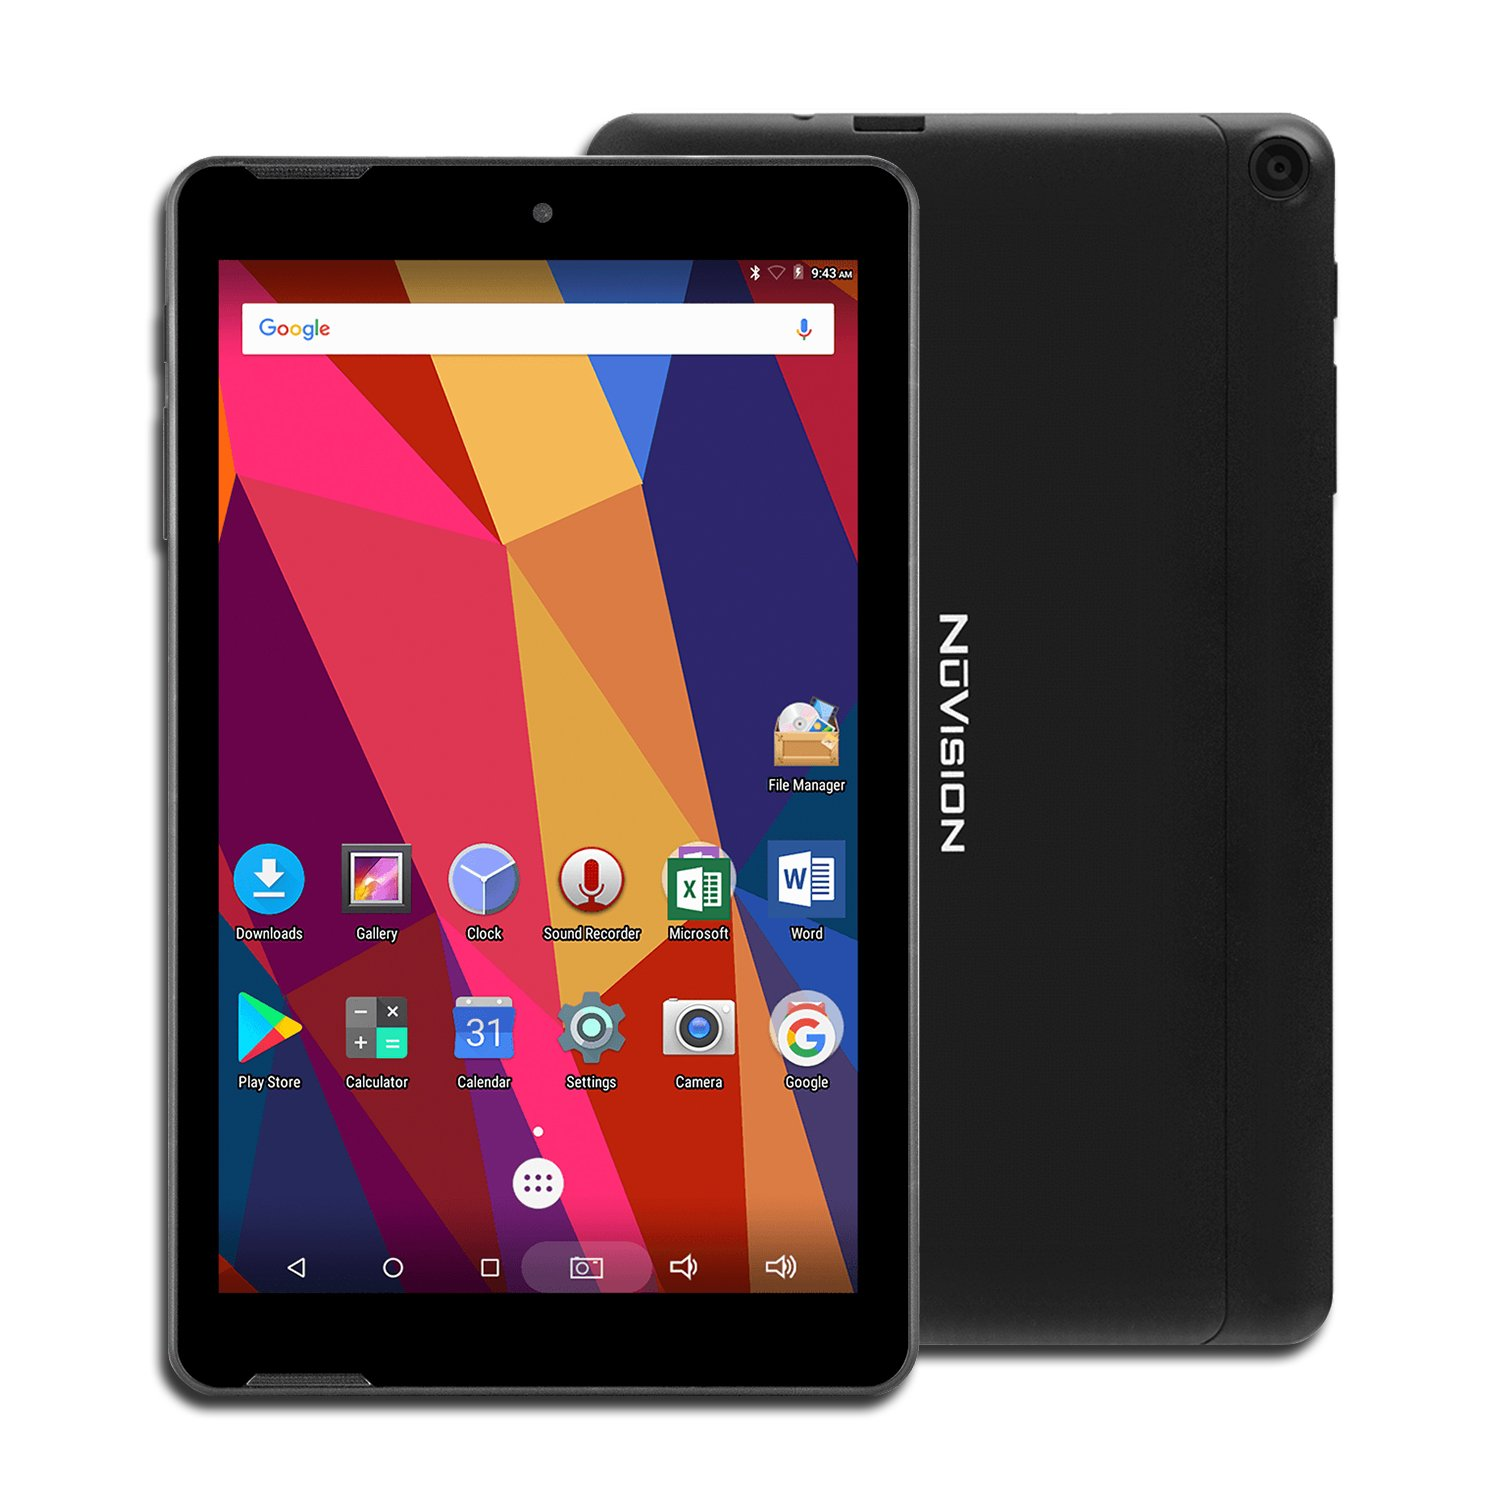 NuVision Solo 8 Android Tablet with 8 Inch Touch Screen IPS HD Display 1280 x 800, 1GB RAM 16GB Storage, 2MP Dual Camera, Quad Core 1.3GHz Processor, Bluetooth, WiFi and Micro USB, Black by Nuvision